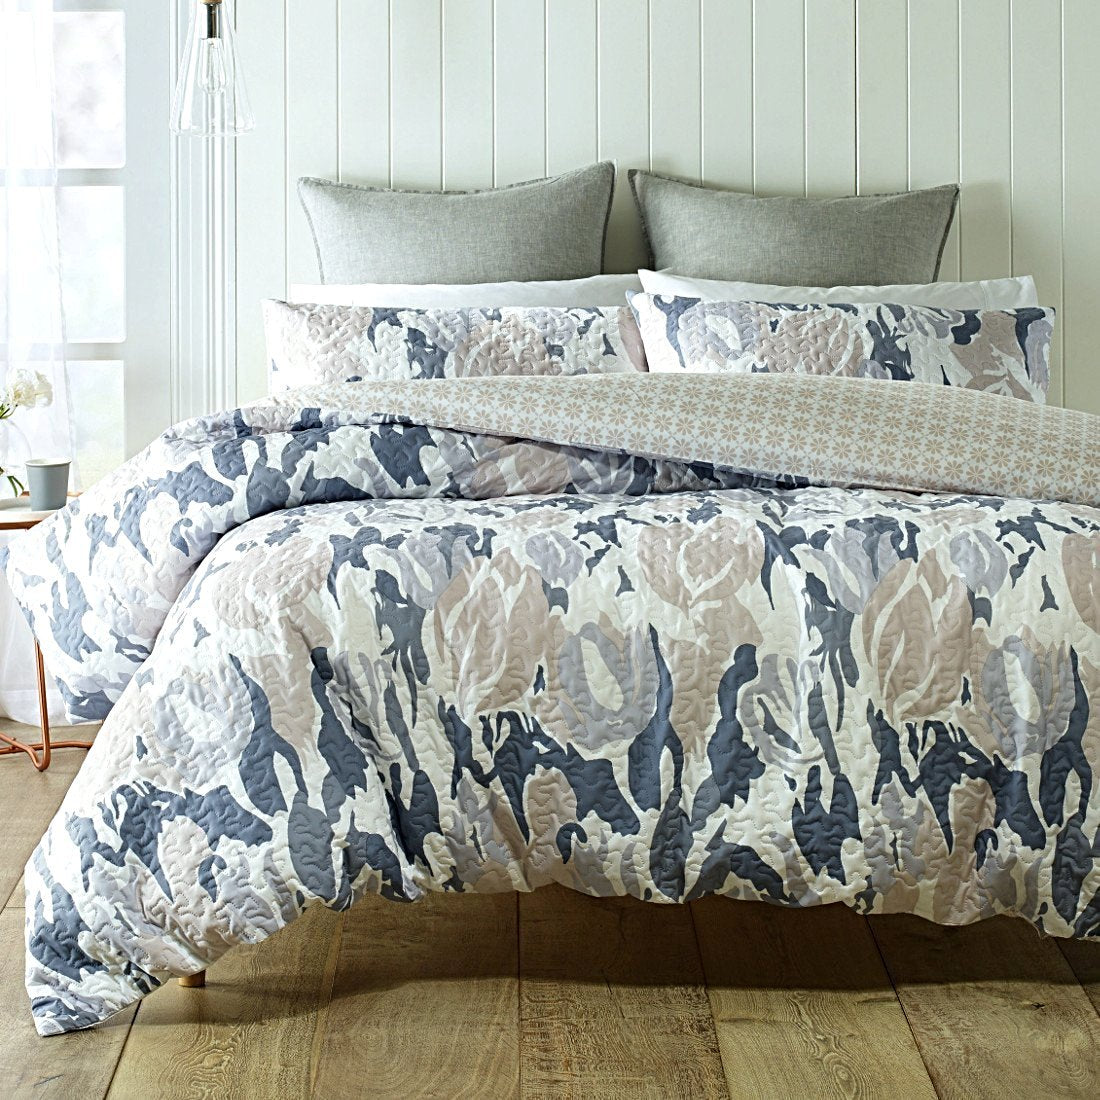 Reversible, Minimal, understated colors like white, grey and beige feature on this quilt cover set.